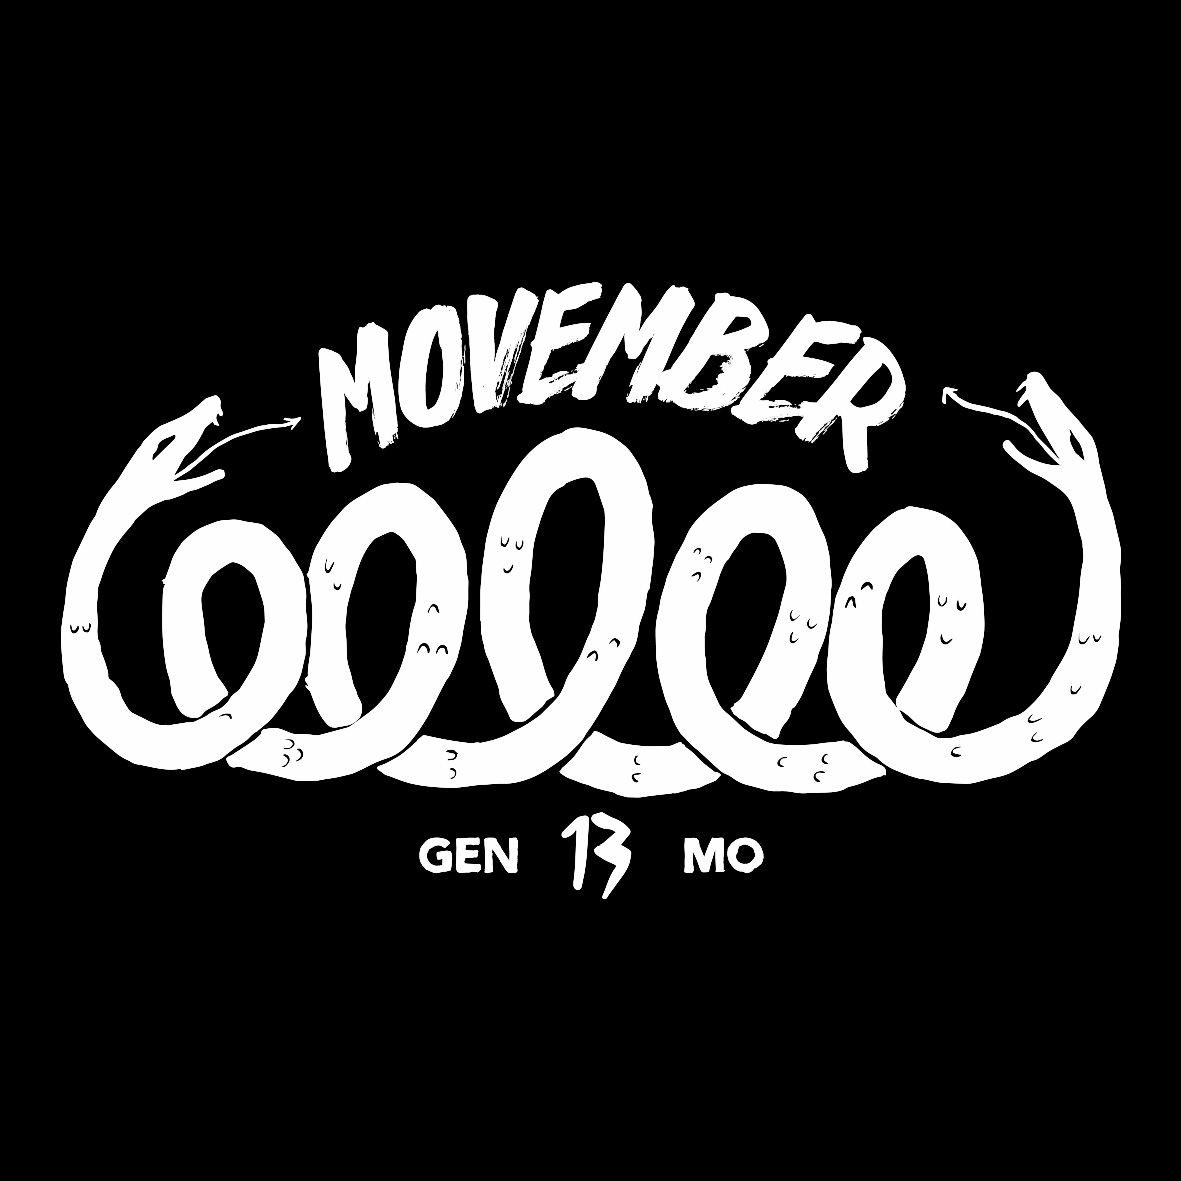 IT'S MO TIME!